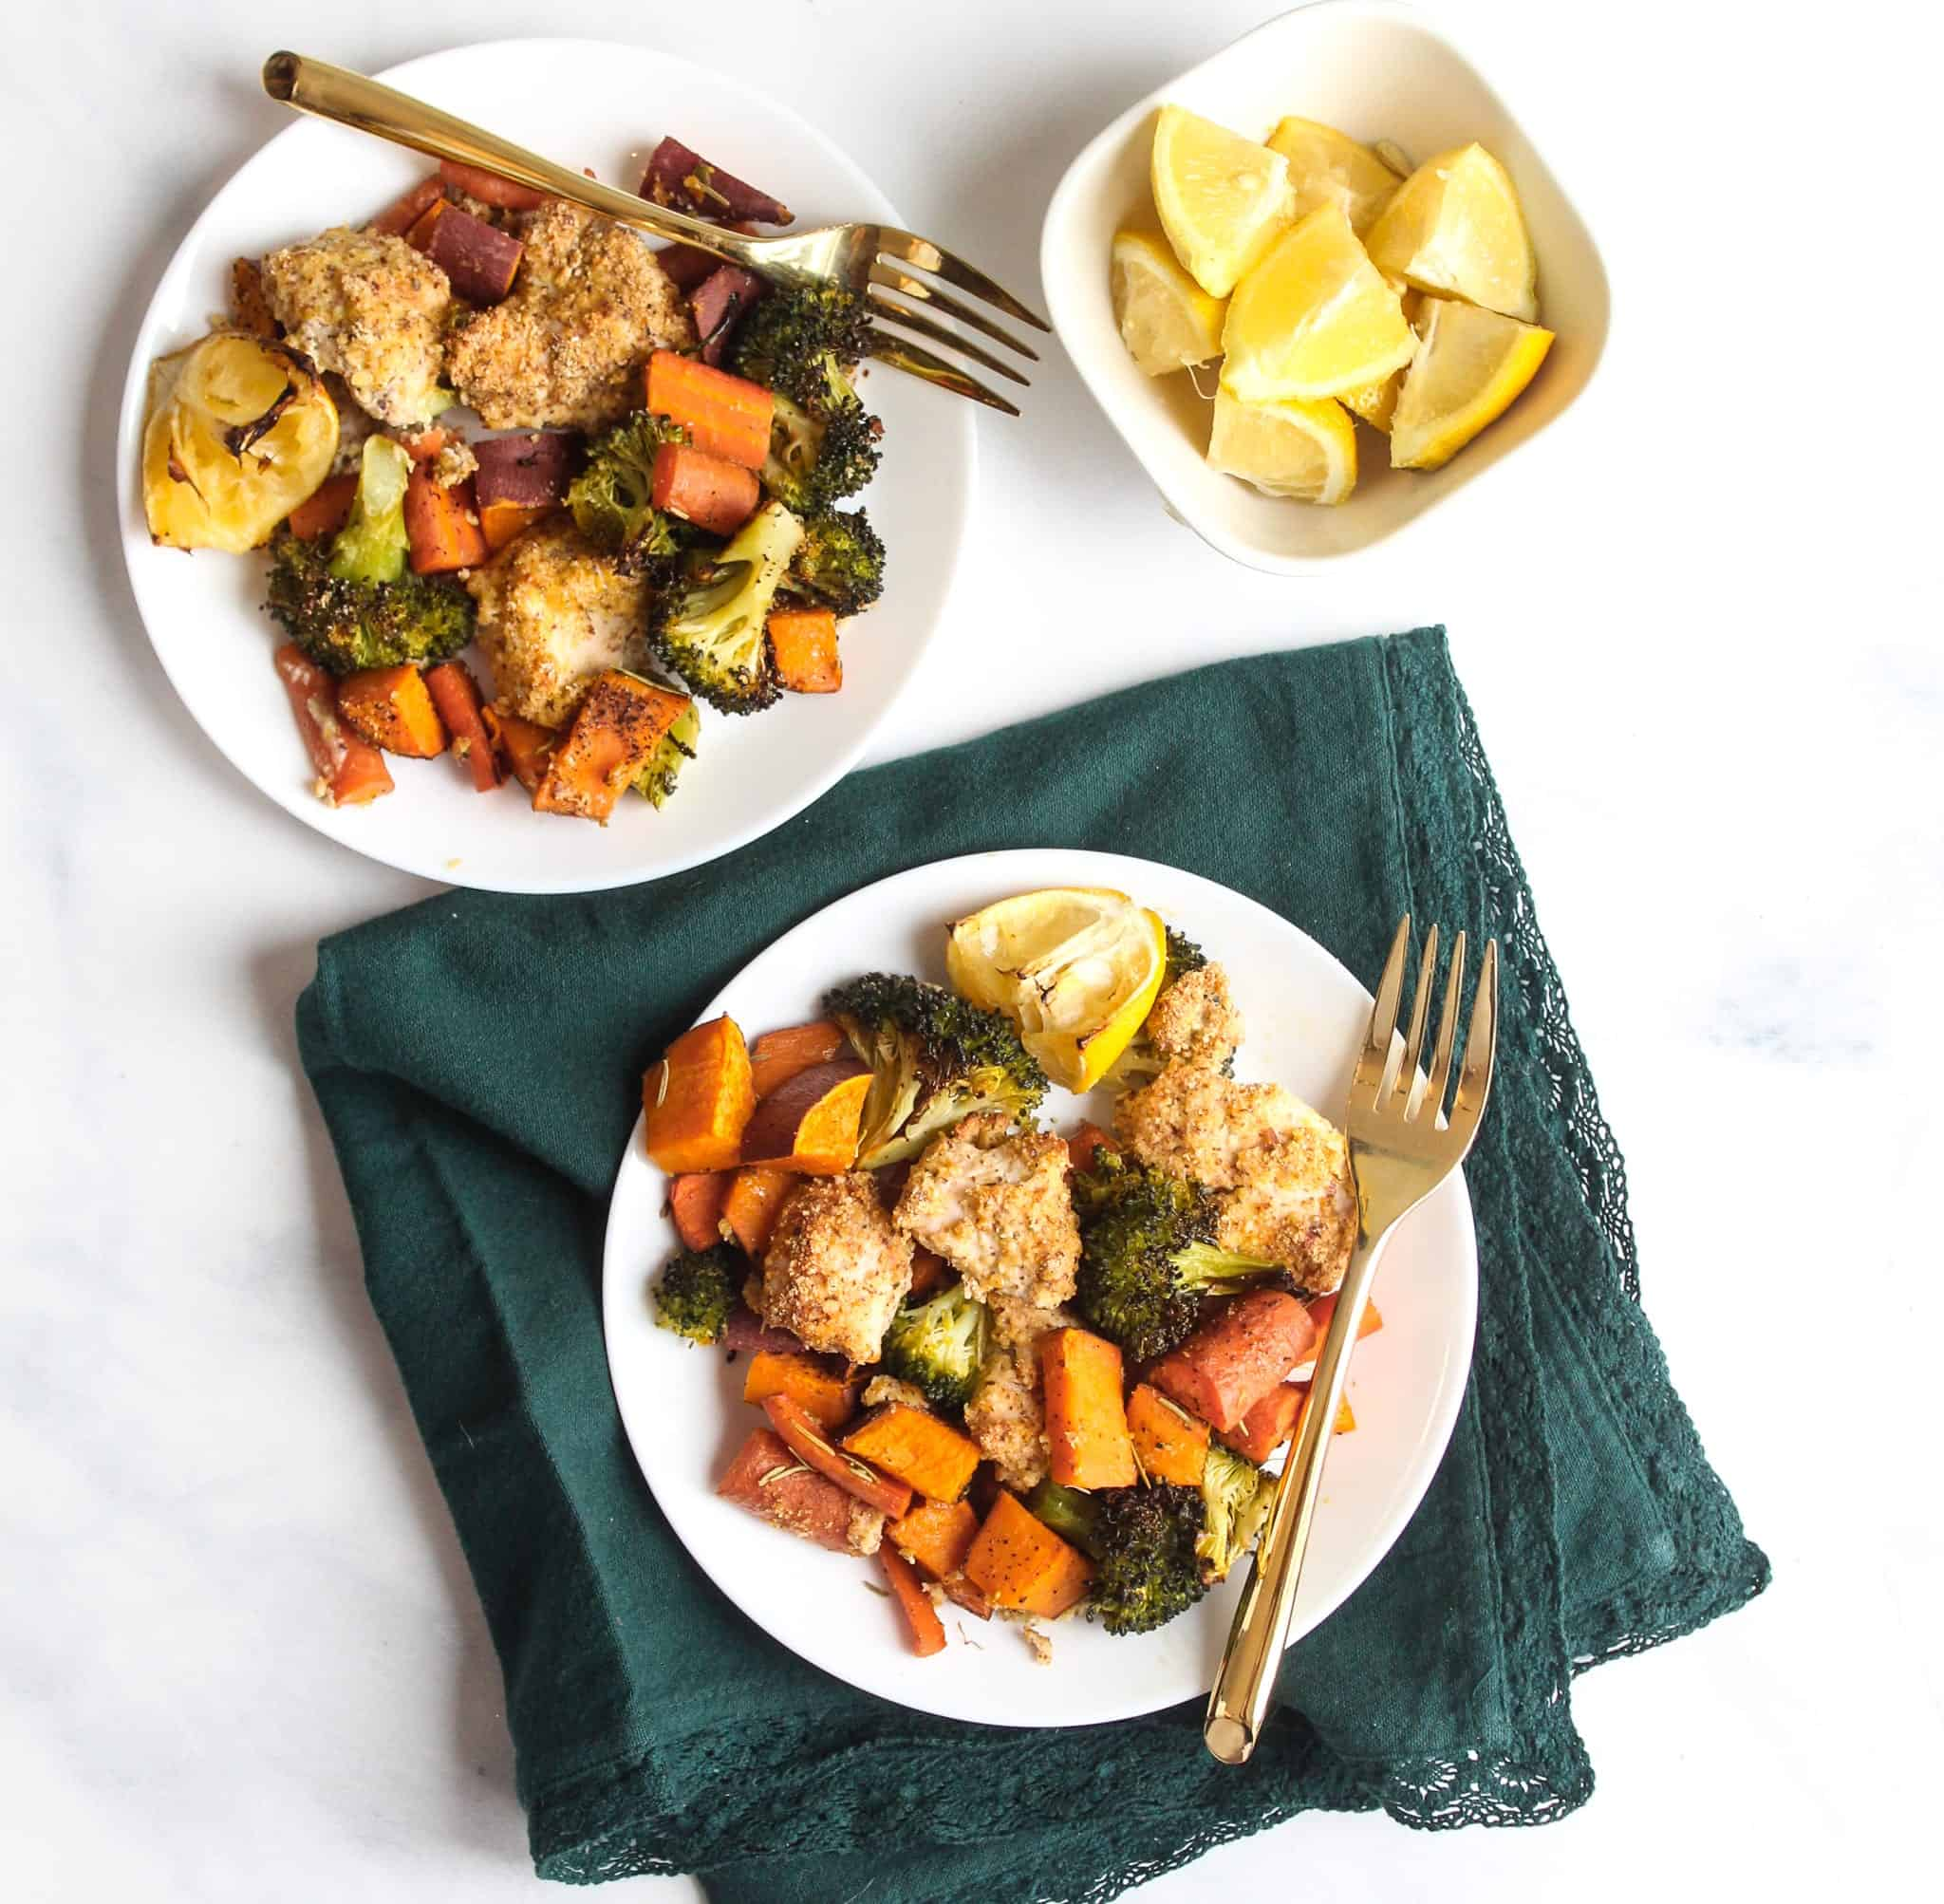 Sheet Pan Baked Almond Chicken Tenders and Roasted Vegetables #glutenfree #dairyfree #lowfodmap #healthydinner